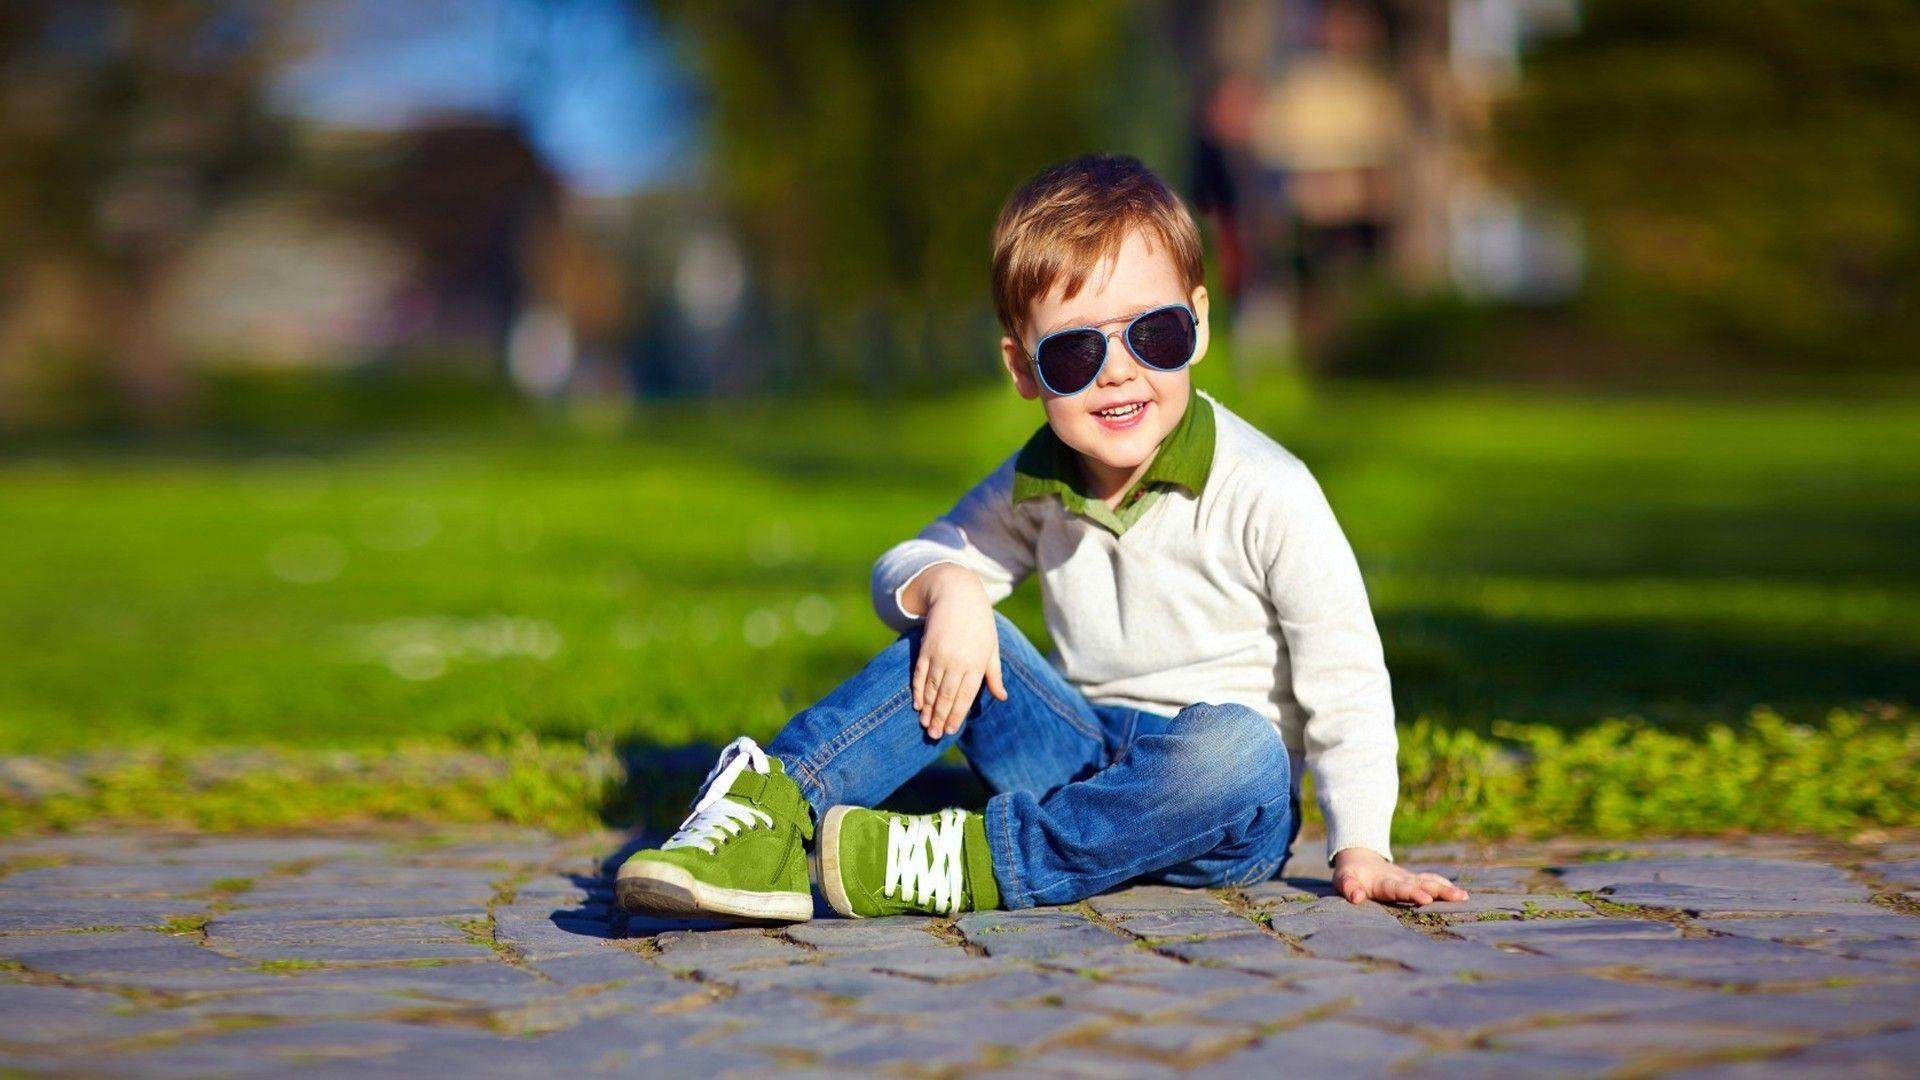 Stylish boy hd wallpapers wallpaper cave - Cool boy wallpaper hd download ...